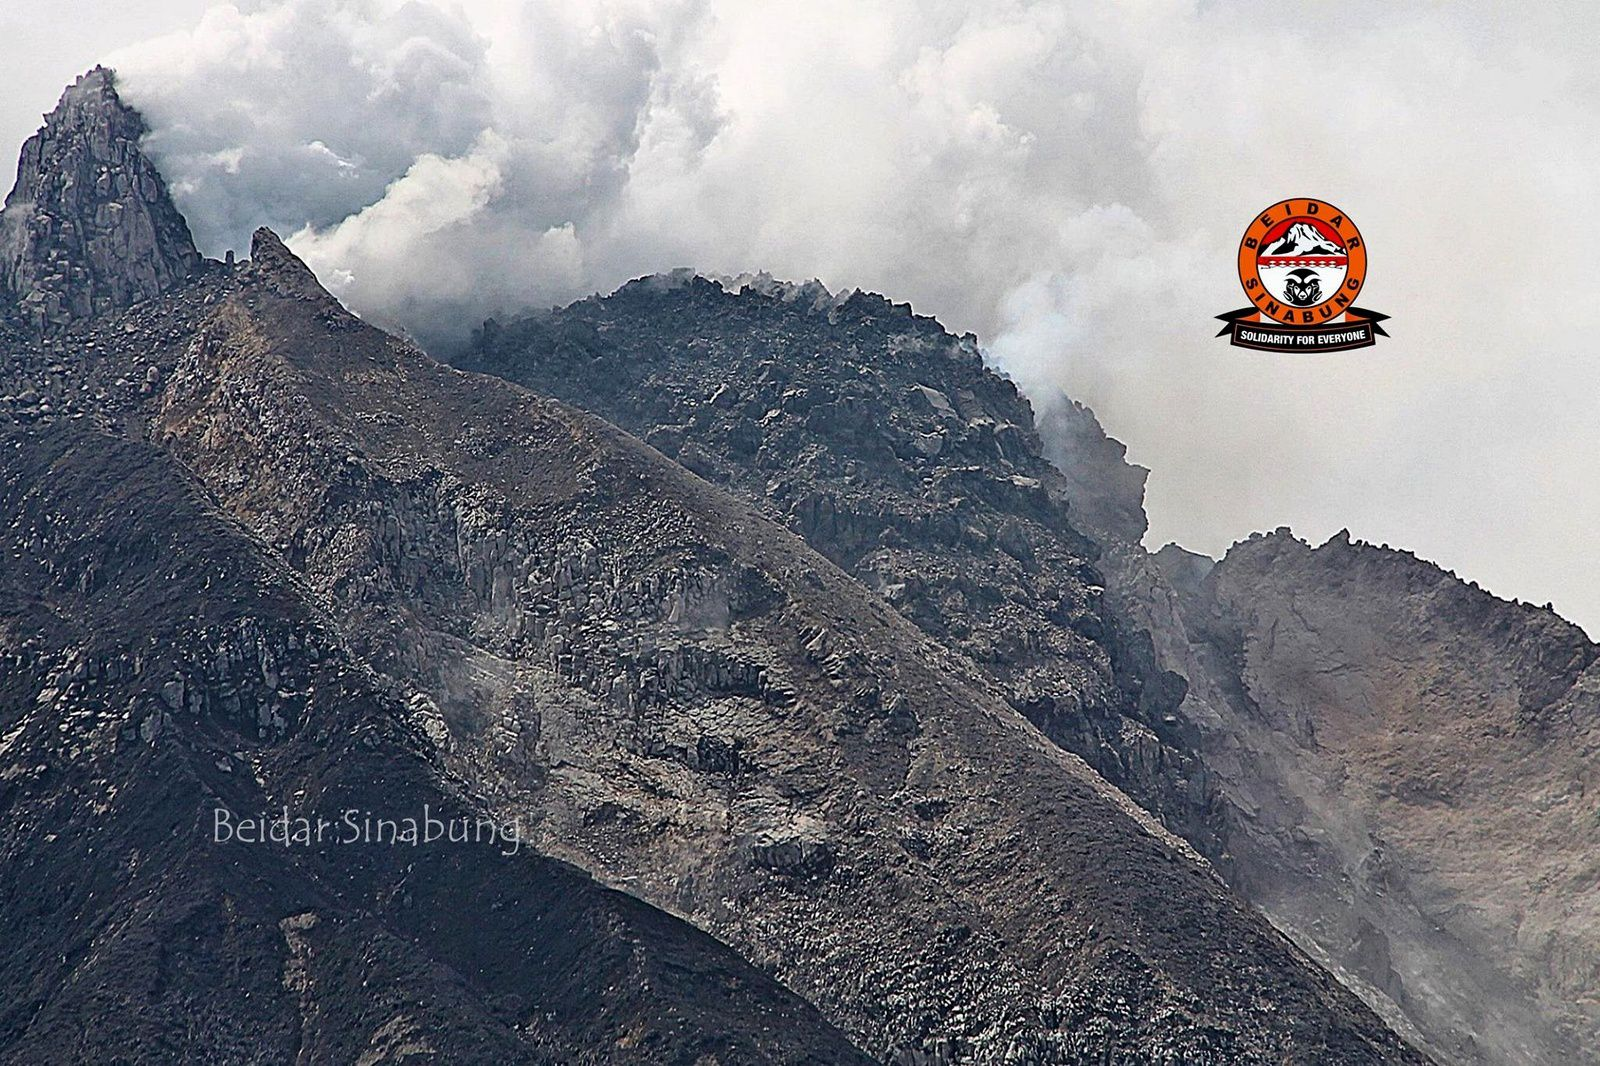 Sinabung - the latest photo of the summit dome on 06/21/2015 - via Beidar Sinabung